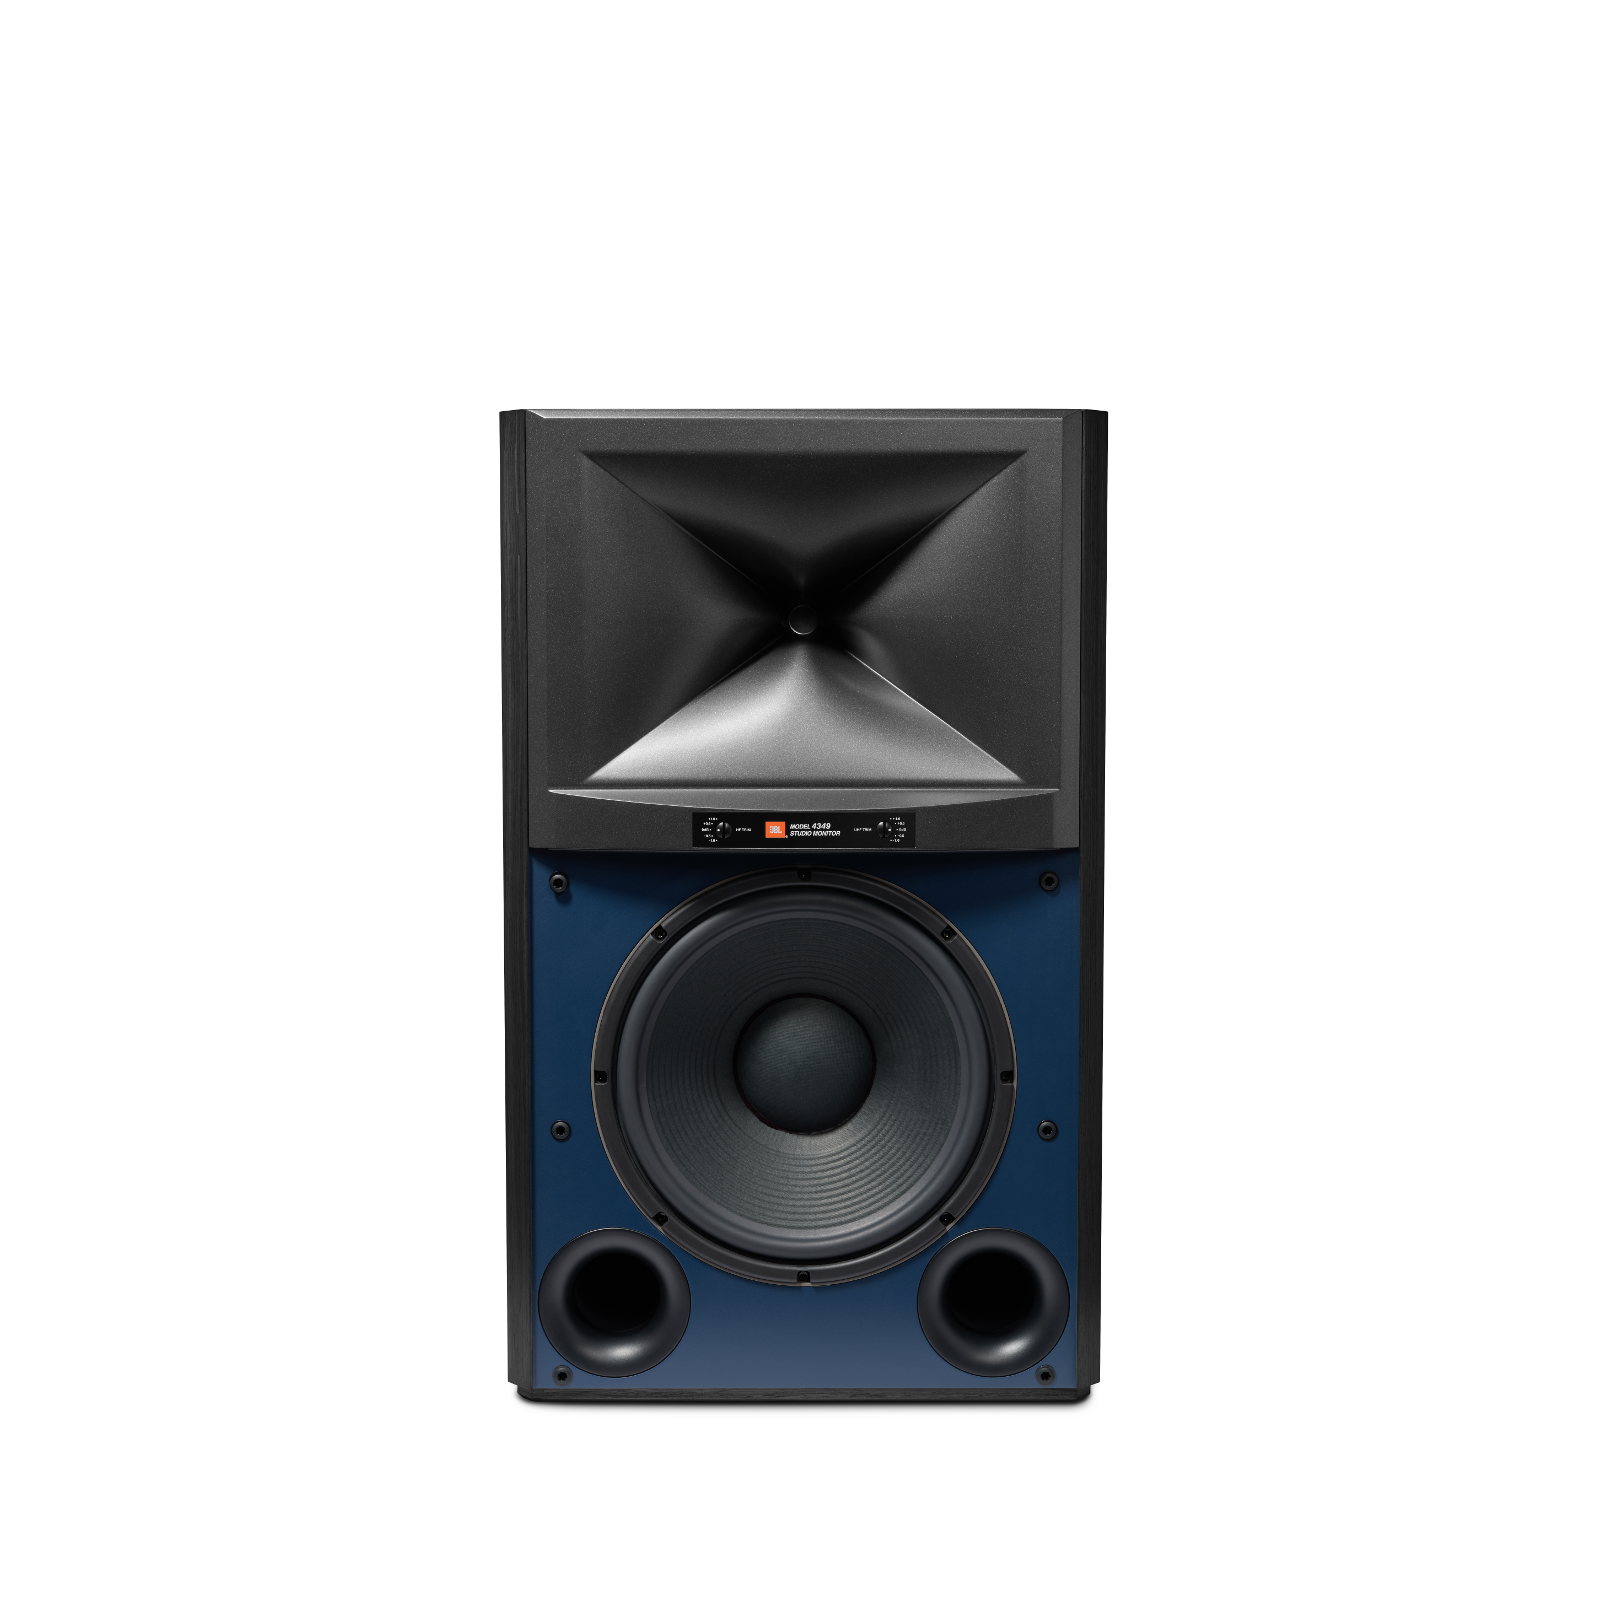 4349 - Black - 12-inch (300mm) 2-way Studio Monitor Loudspeaker - Hero